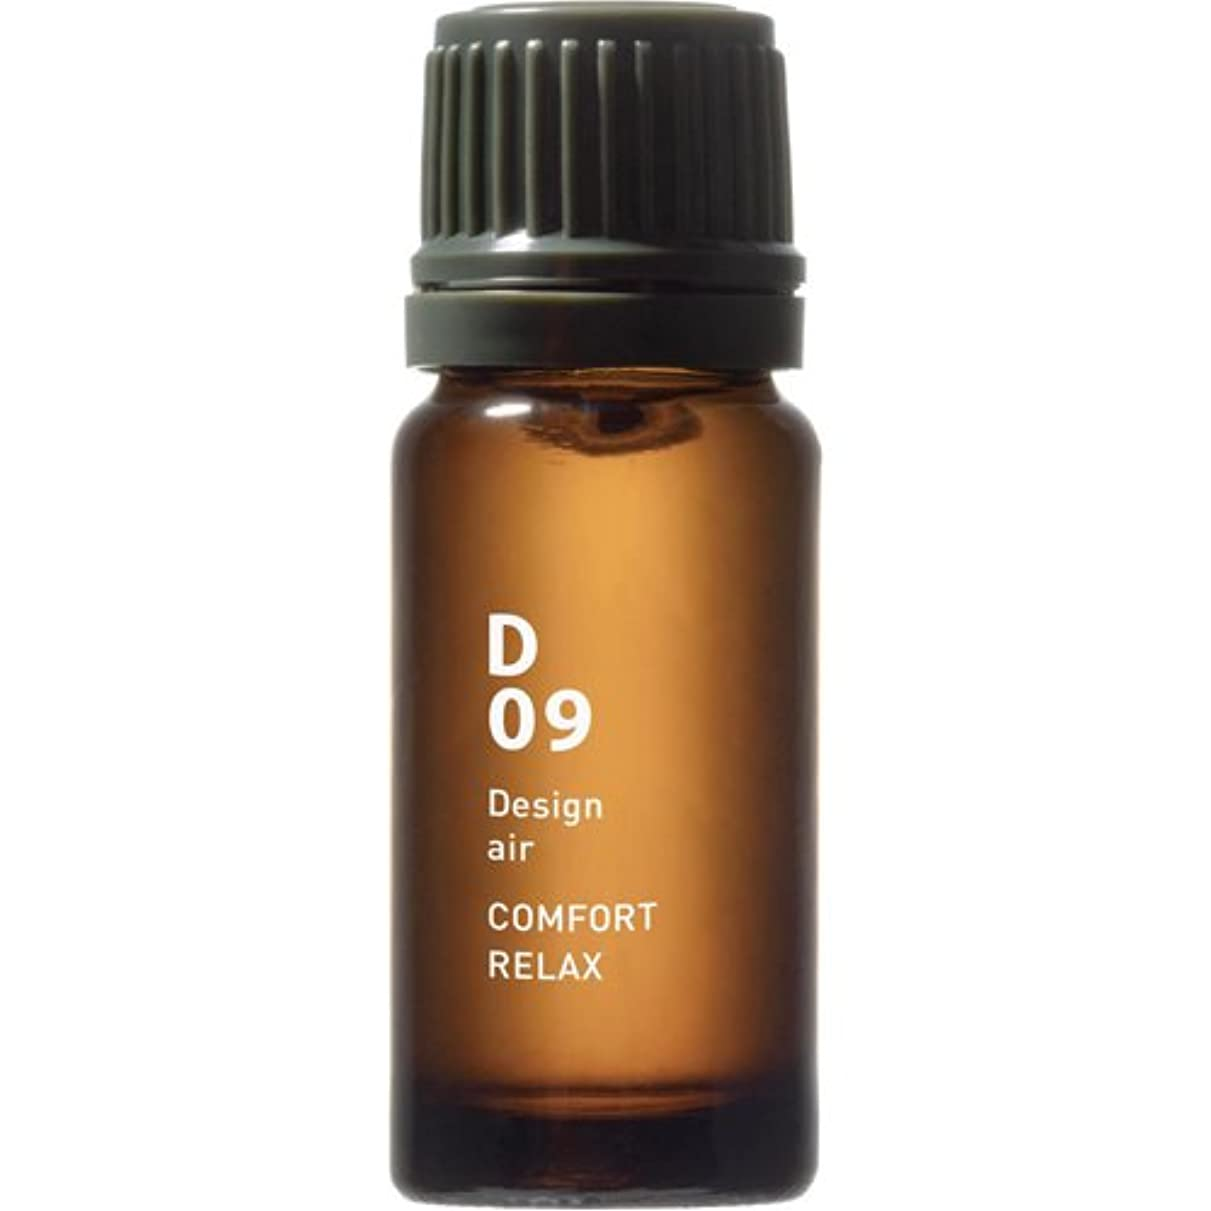 フィード接地示すD09 COMFORT RELAX Design air 10ml